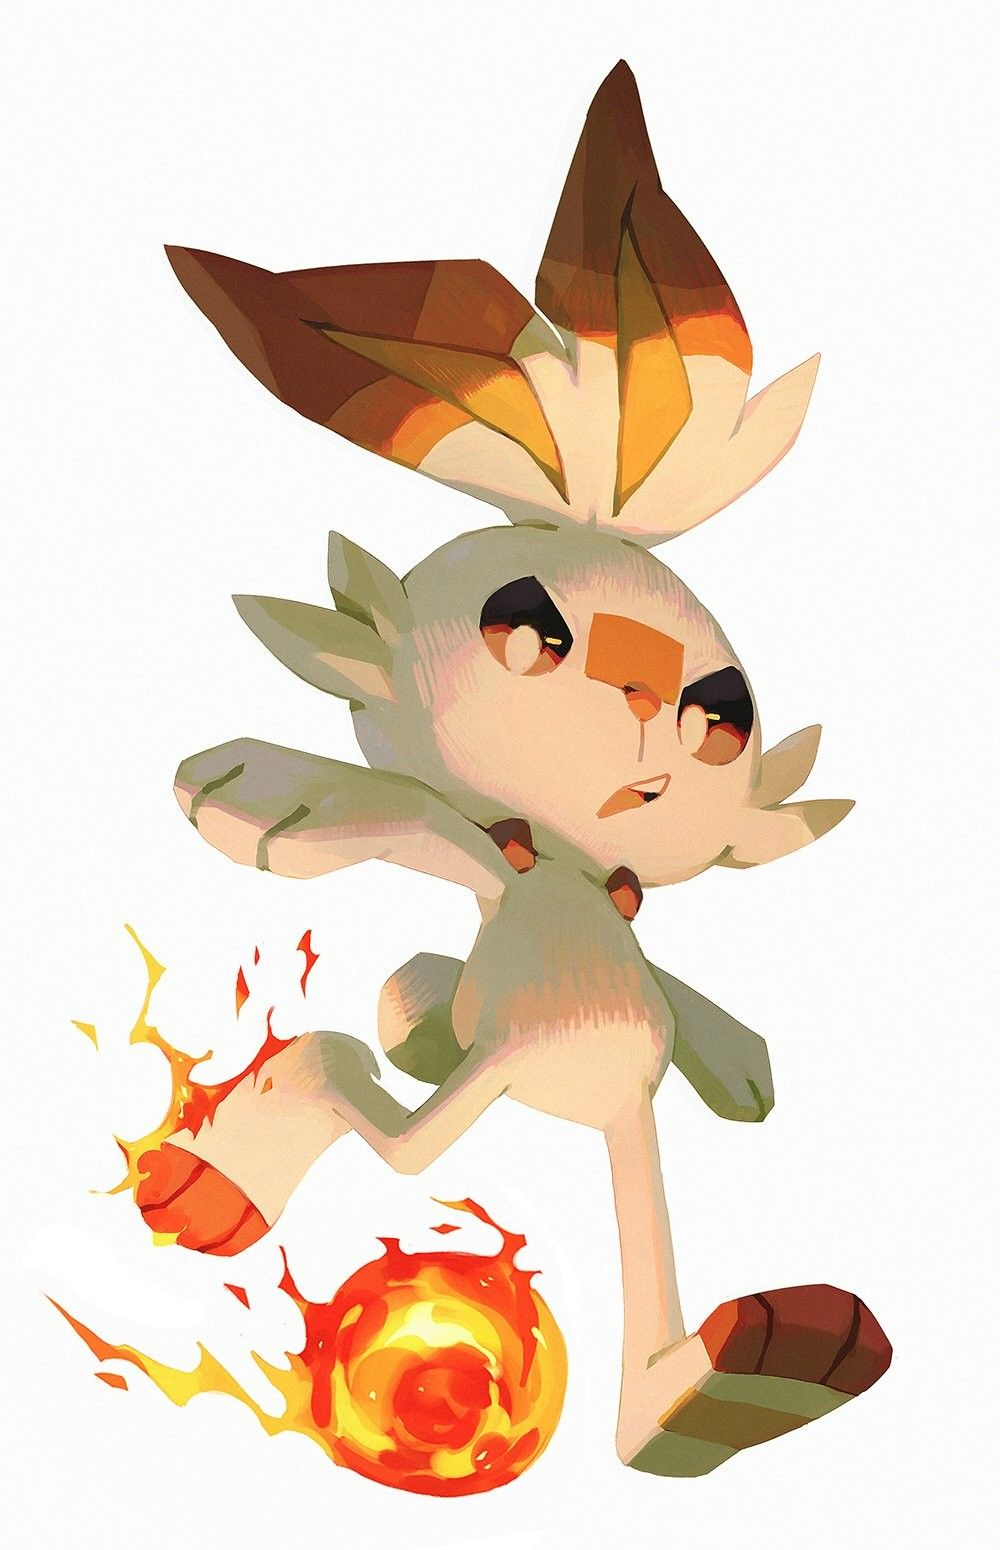 Pin By Quikyu On Drawings I Really Like Pokemon Drawings Cute Pokemon Pokemon Art